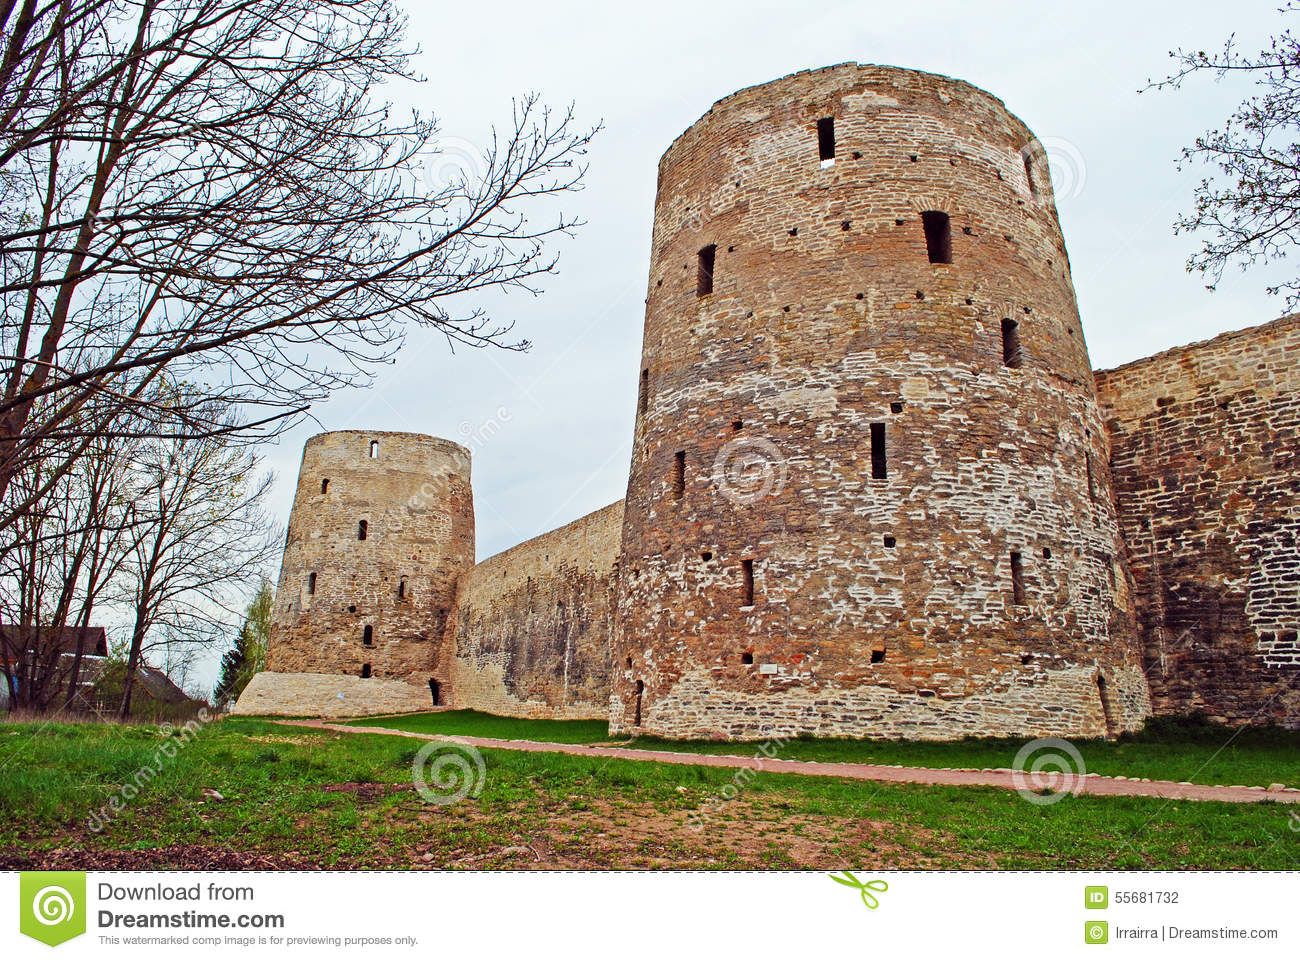 Izborsk fortress, Pskov region: photo and description, history of sights, how to get 34